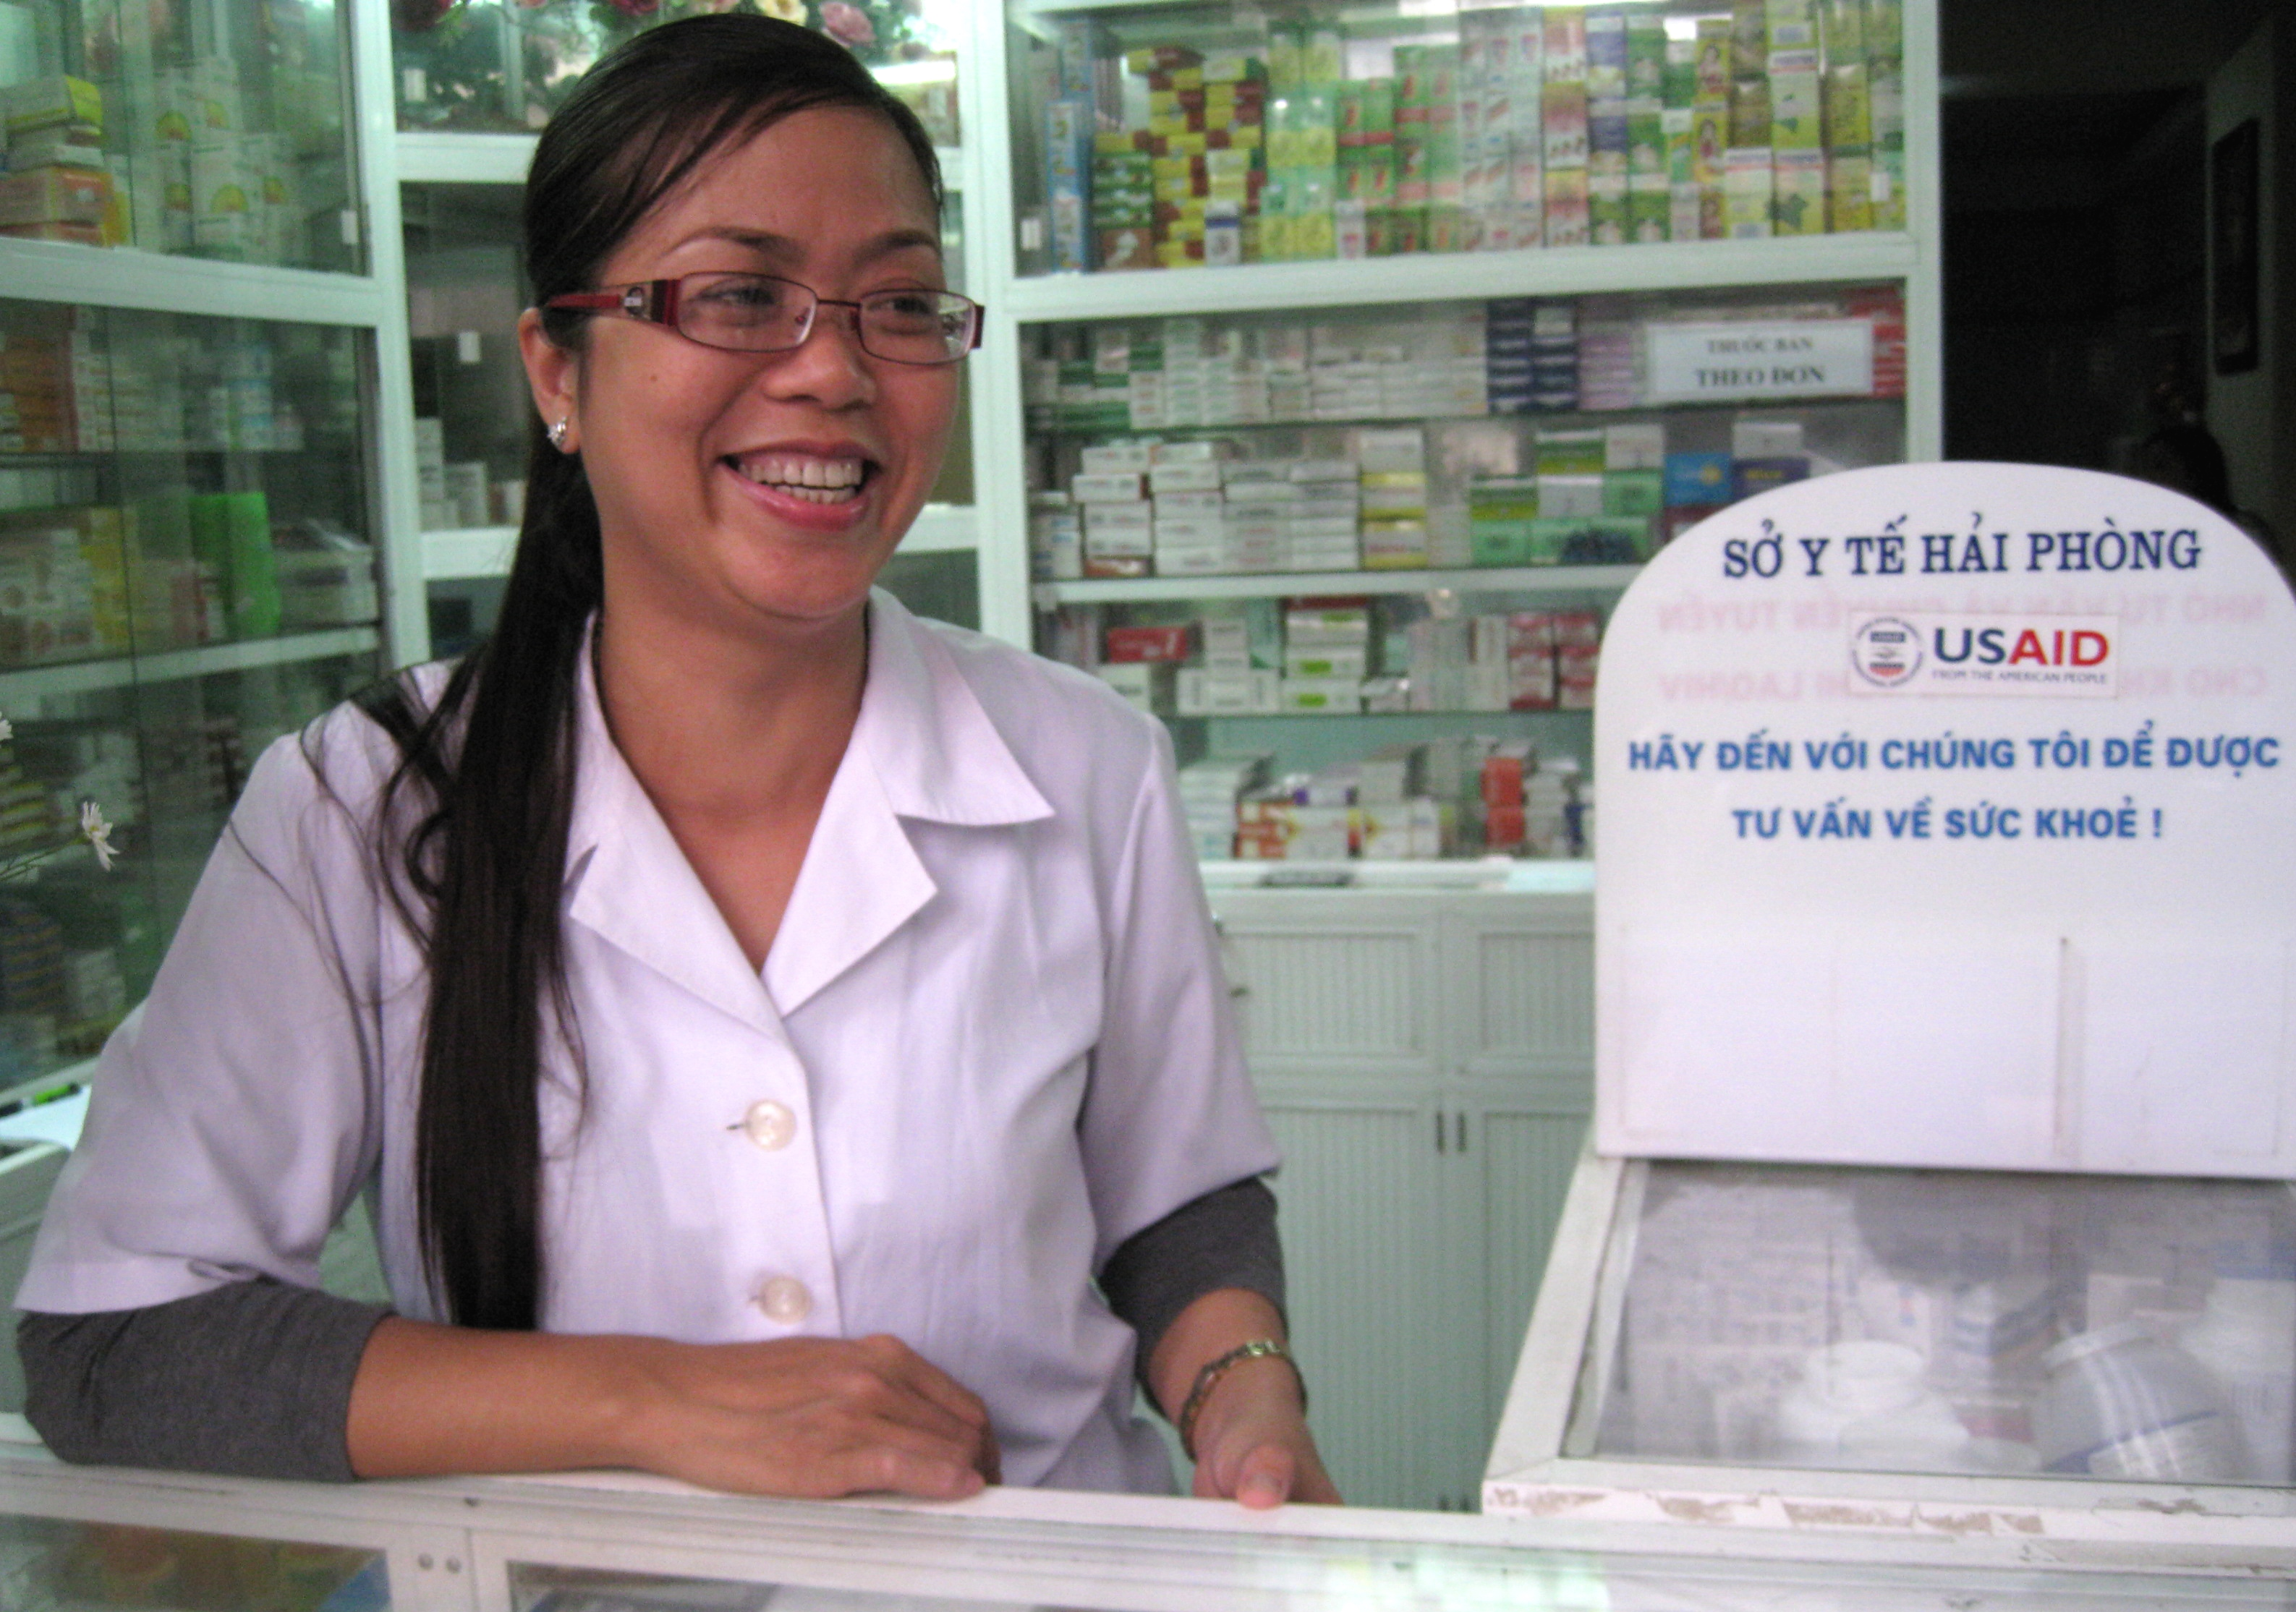 Pharmacies take part in TB referral services with support from USAID.